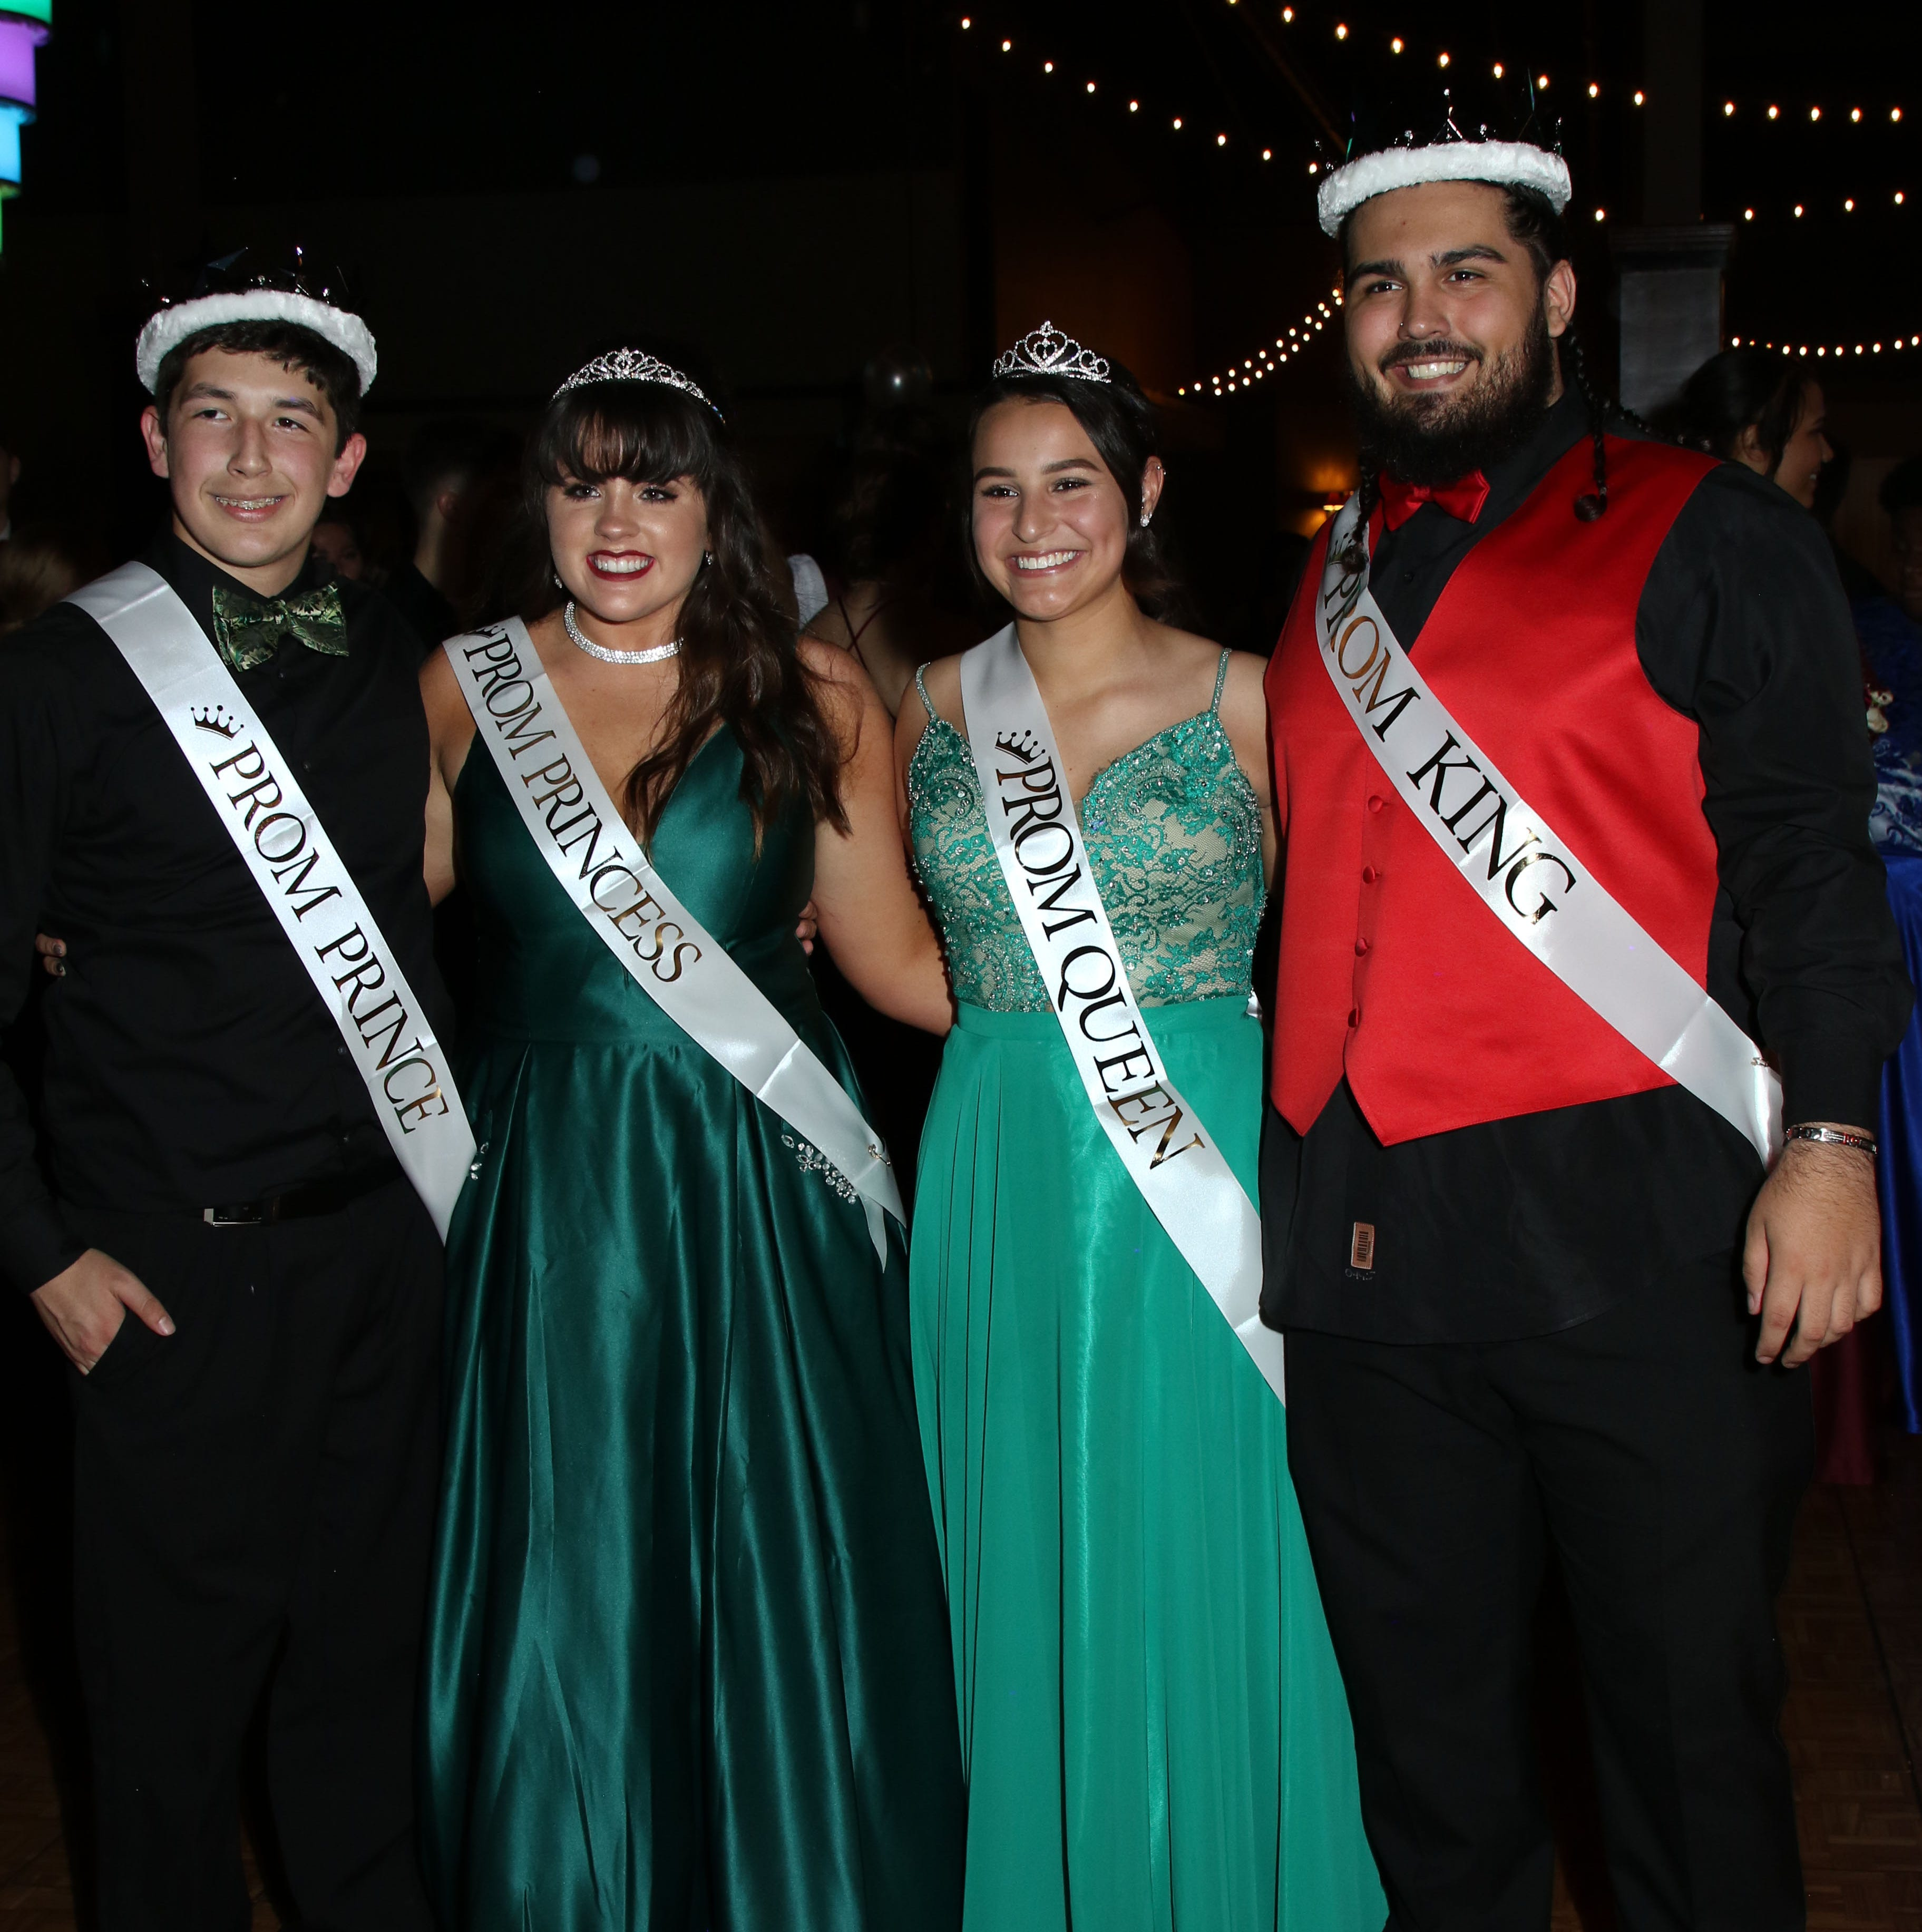 Port Clinton Royalty